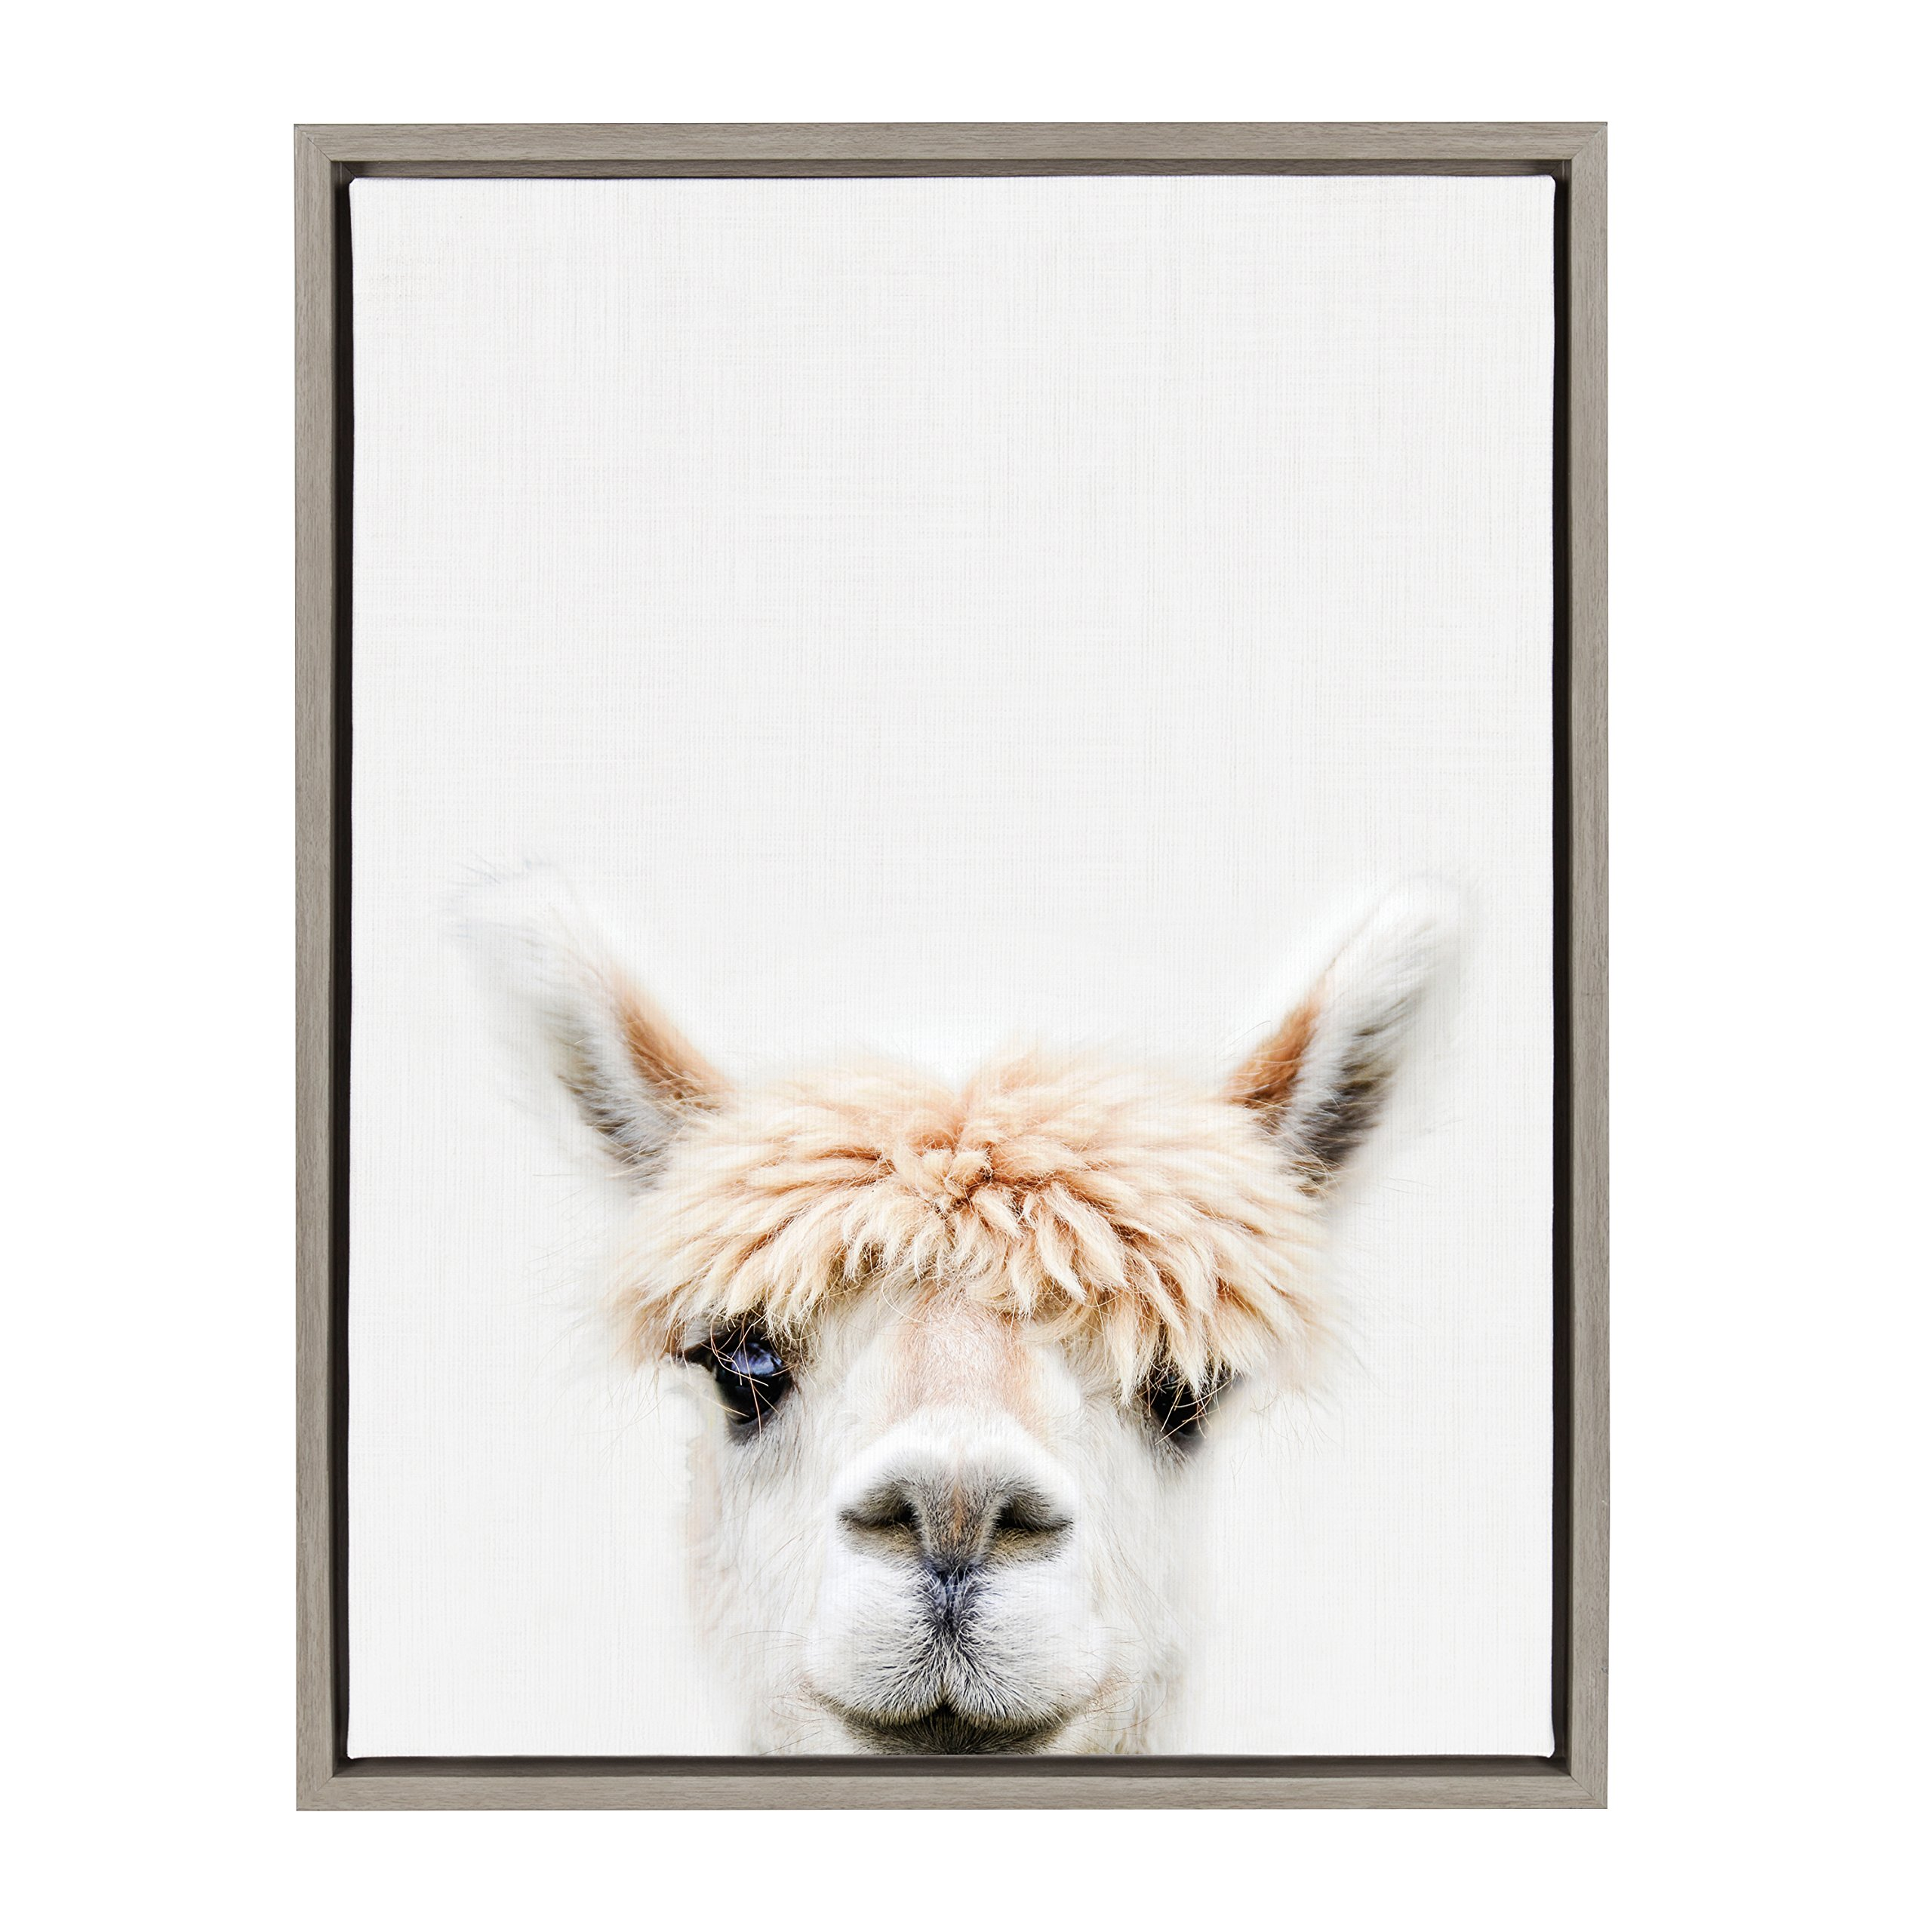 Kate and Laurel - Sylvie Alpaca Bangs Animal Print Portrait Framed Canvas Wall Art by Amy Peterson, Gray 18 x 24